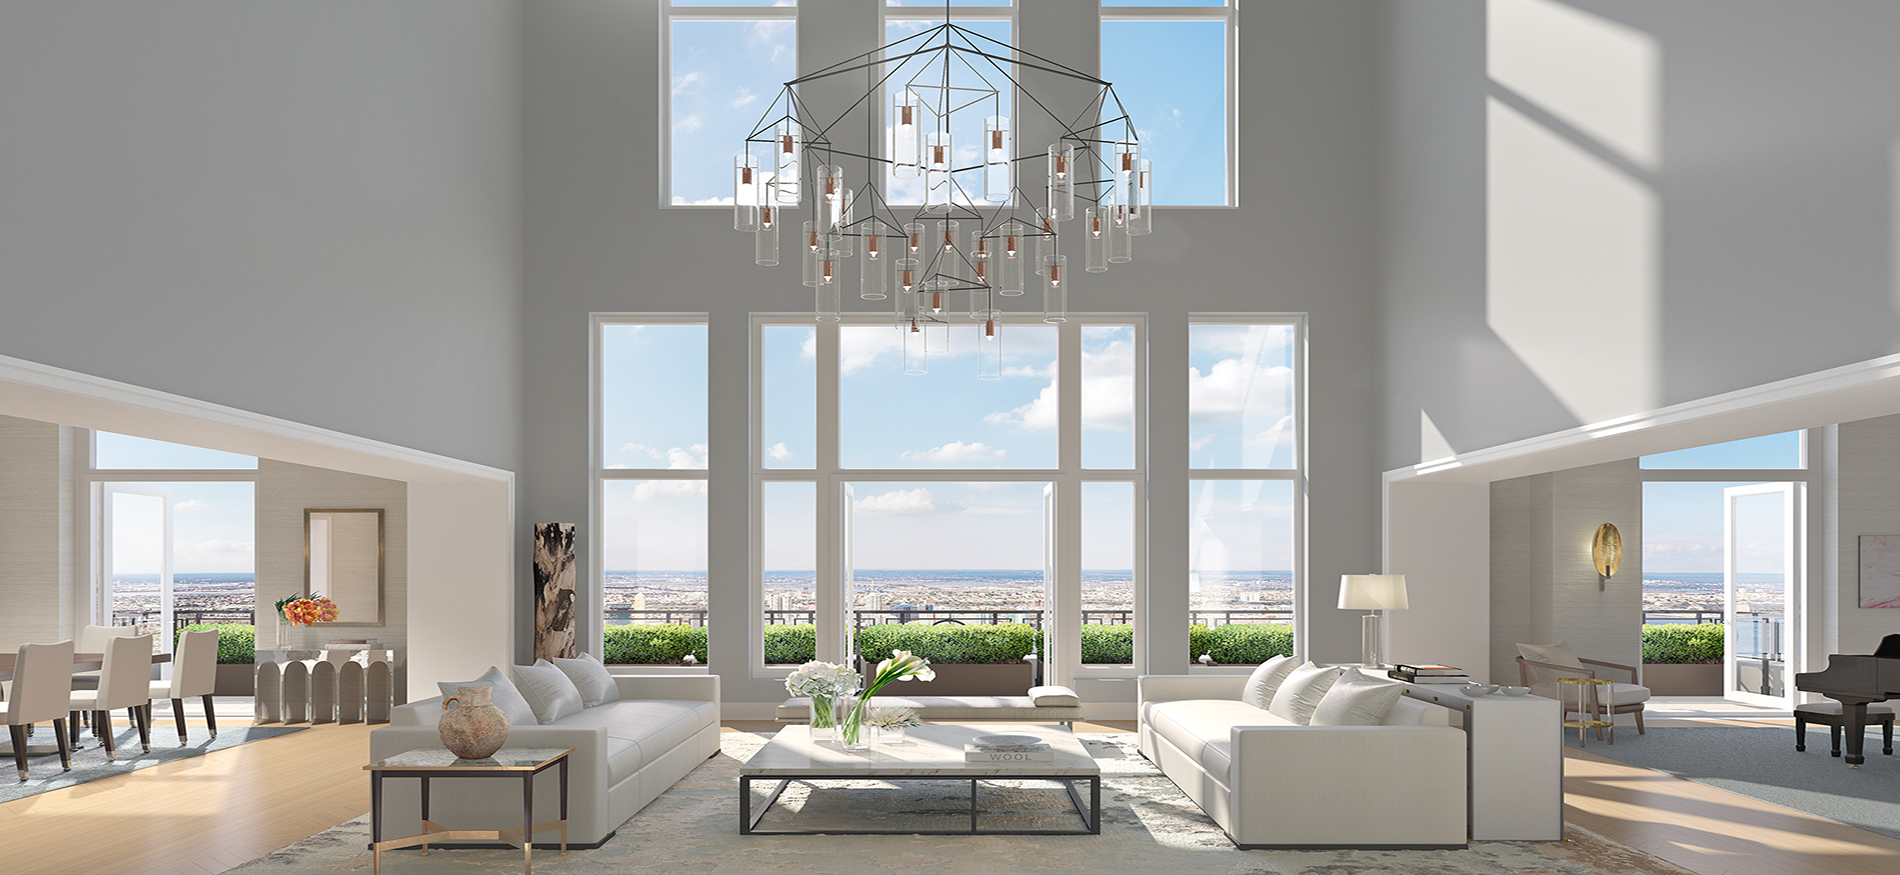 Automated Shades, Drapes and Blinds for Light Control